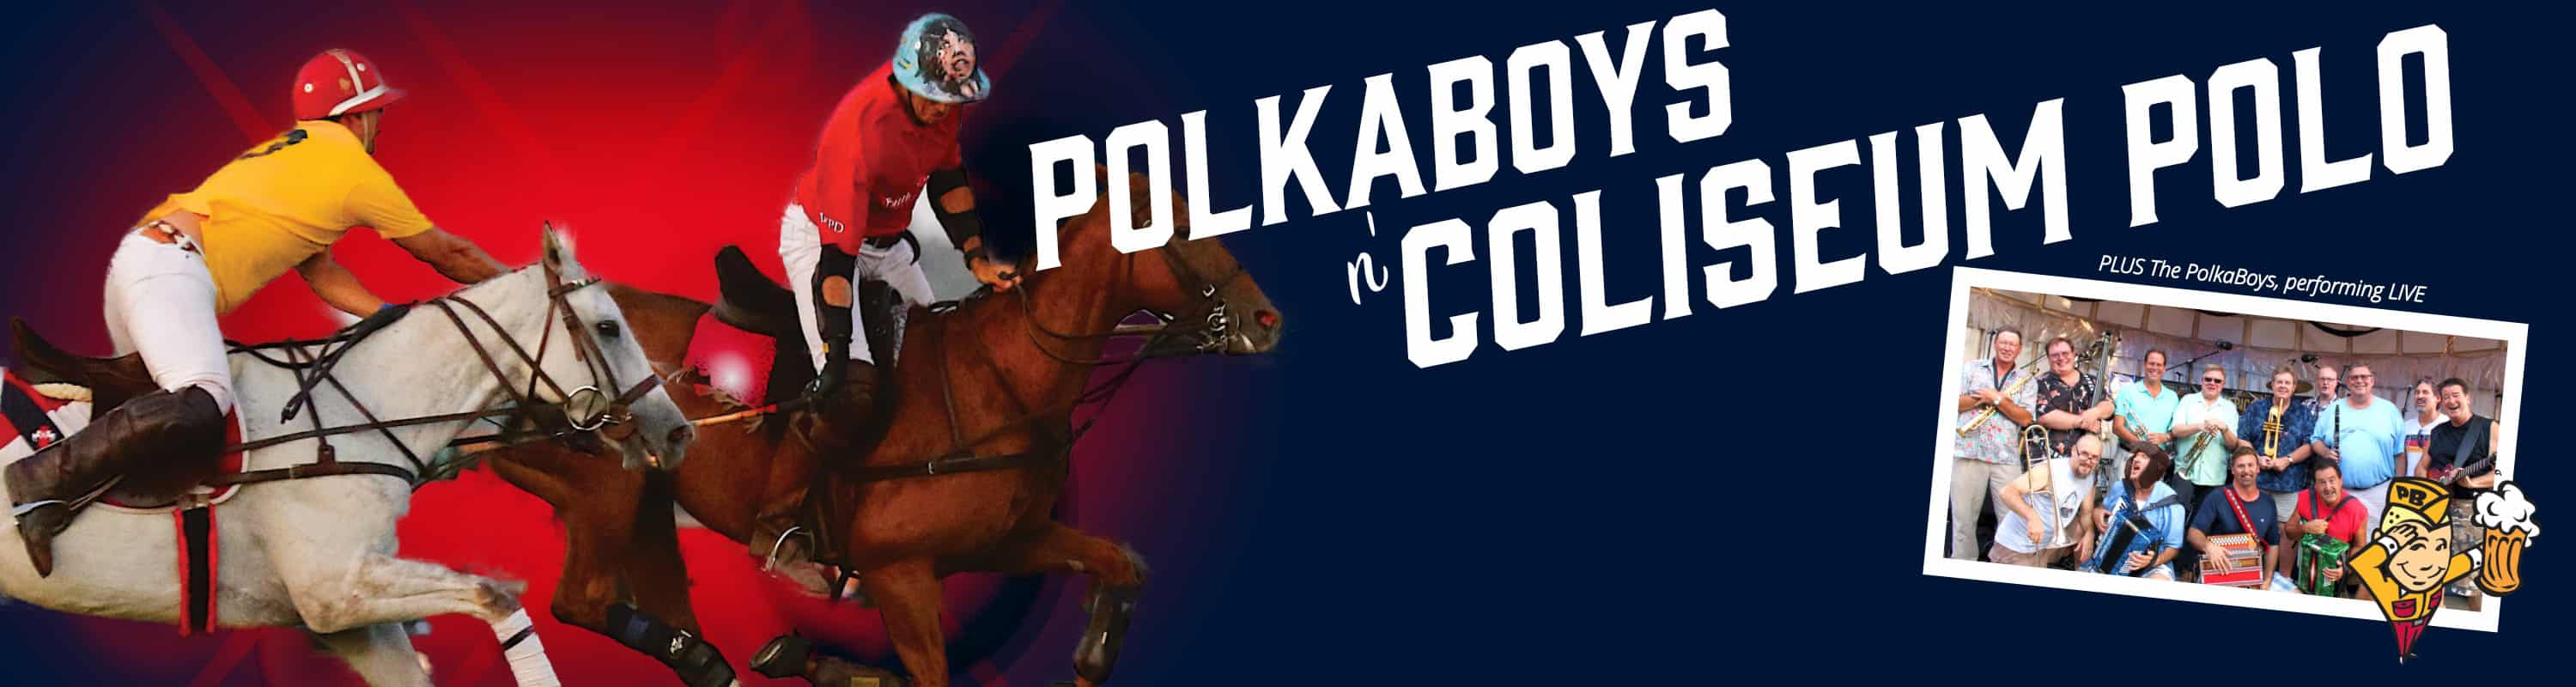 2019 Polo Event August 24